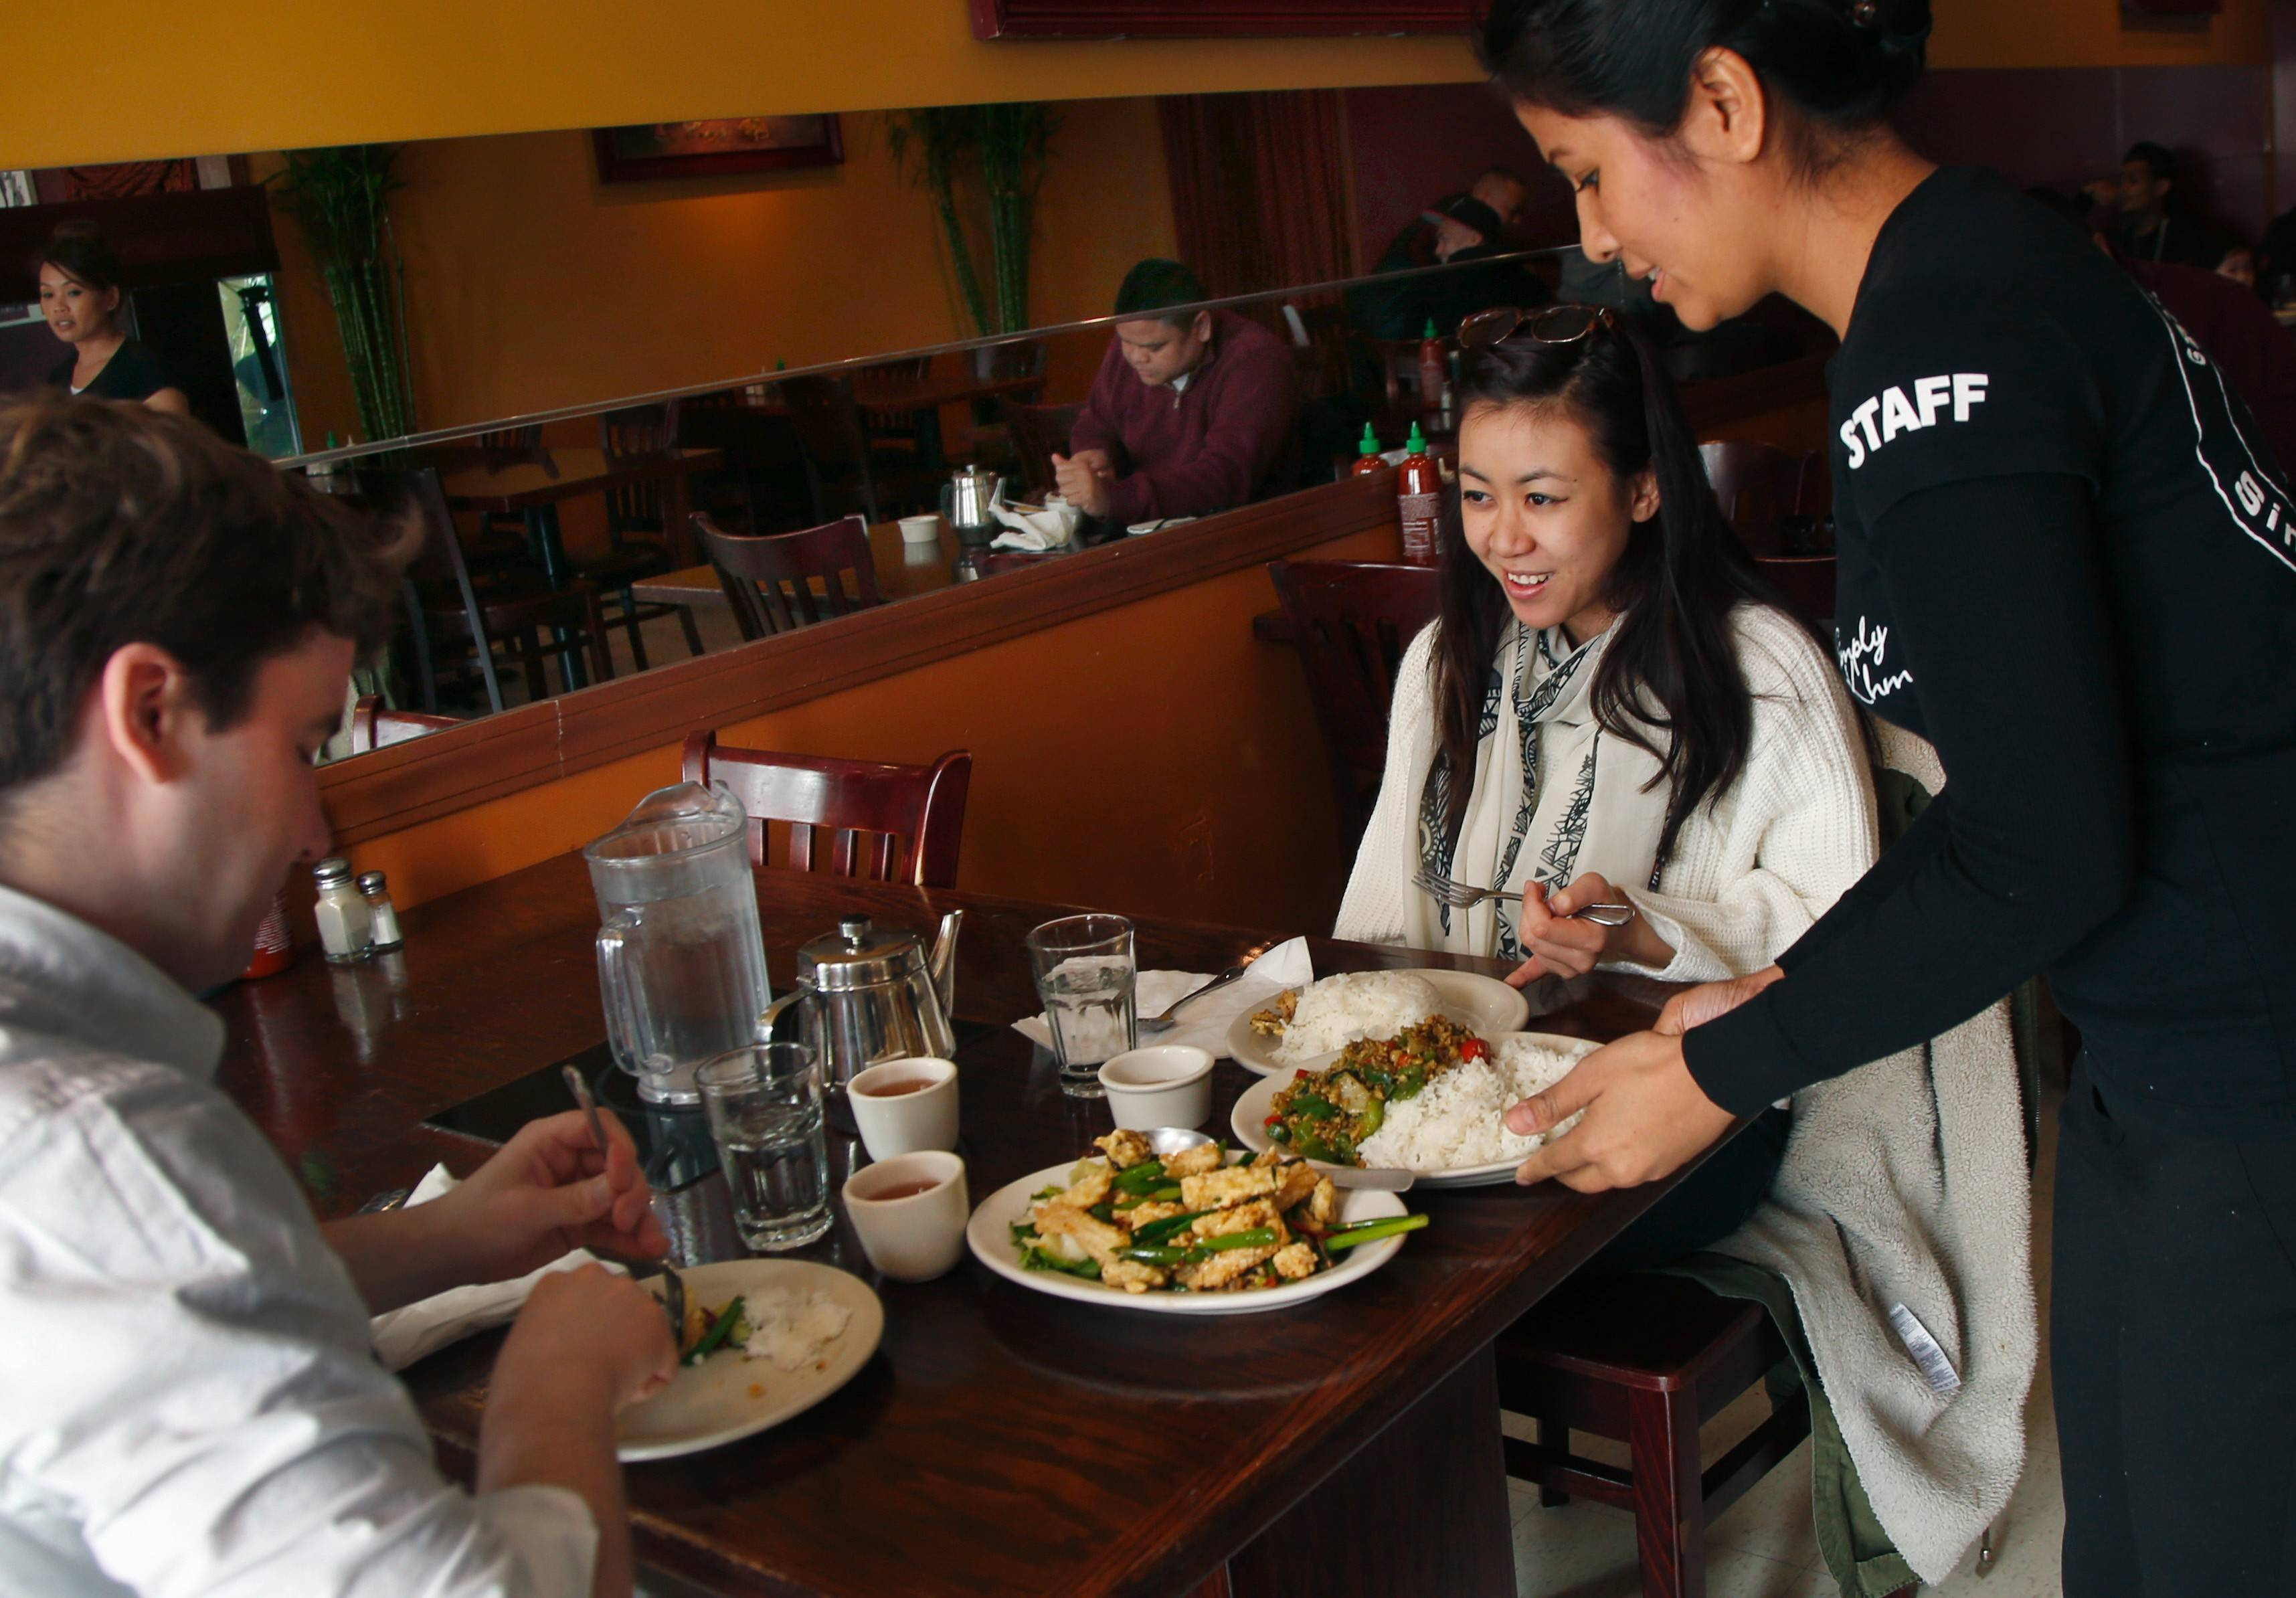 Simply Khmer is considered by some to offer the best -- and most authentic -- Cambodian food in Lowell, Mass.